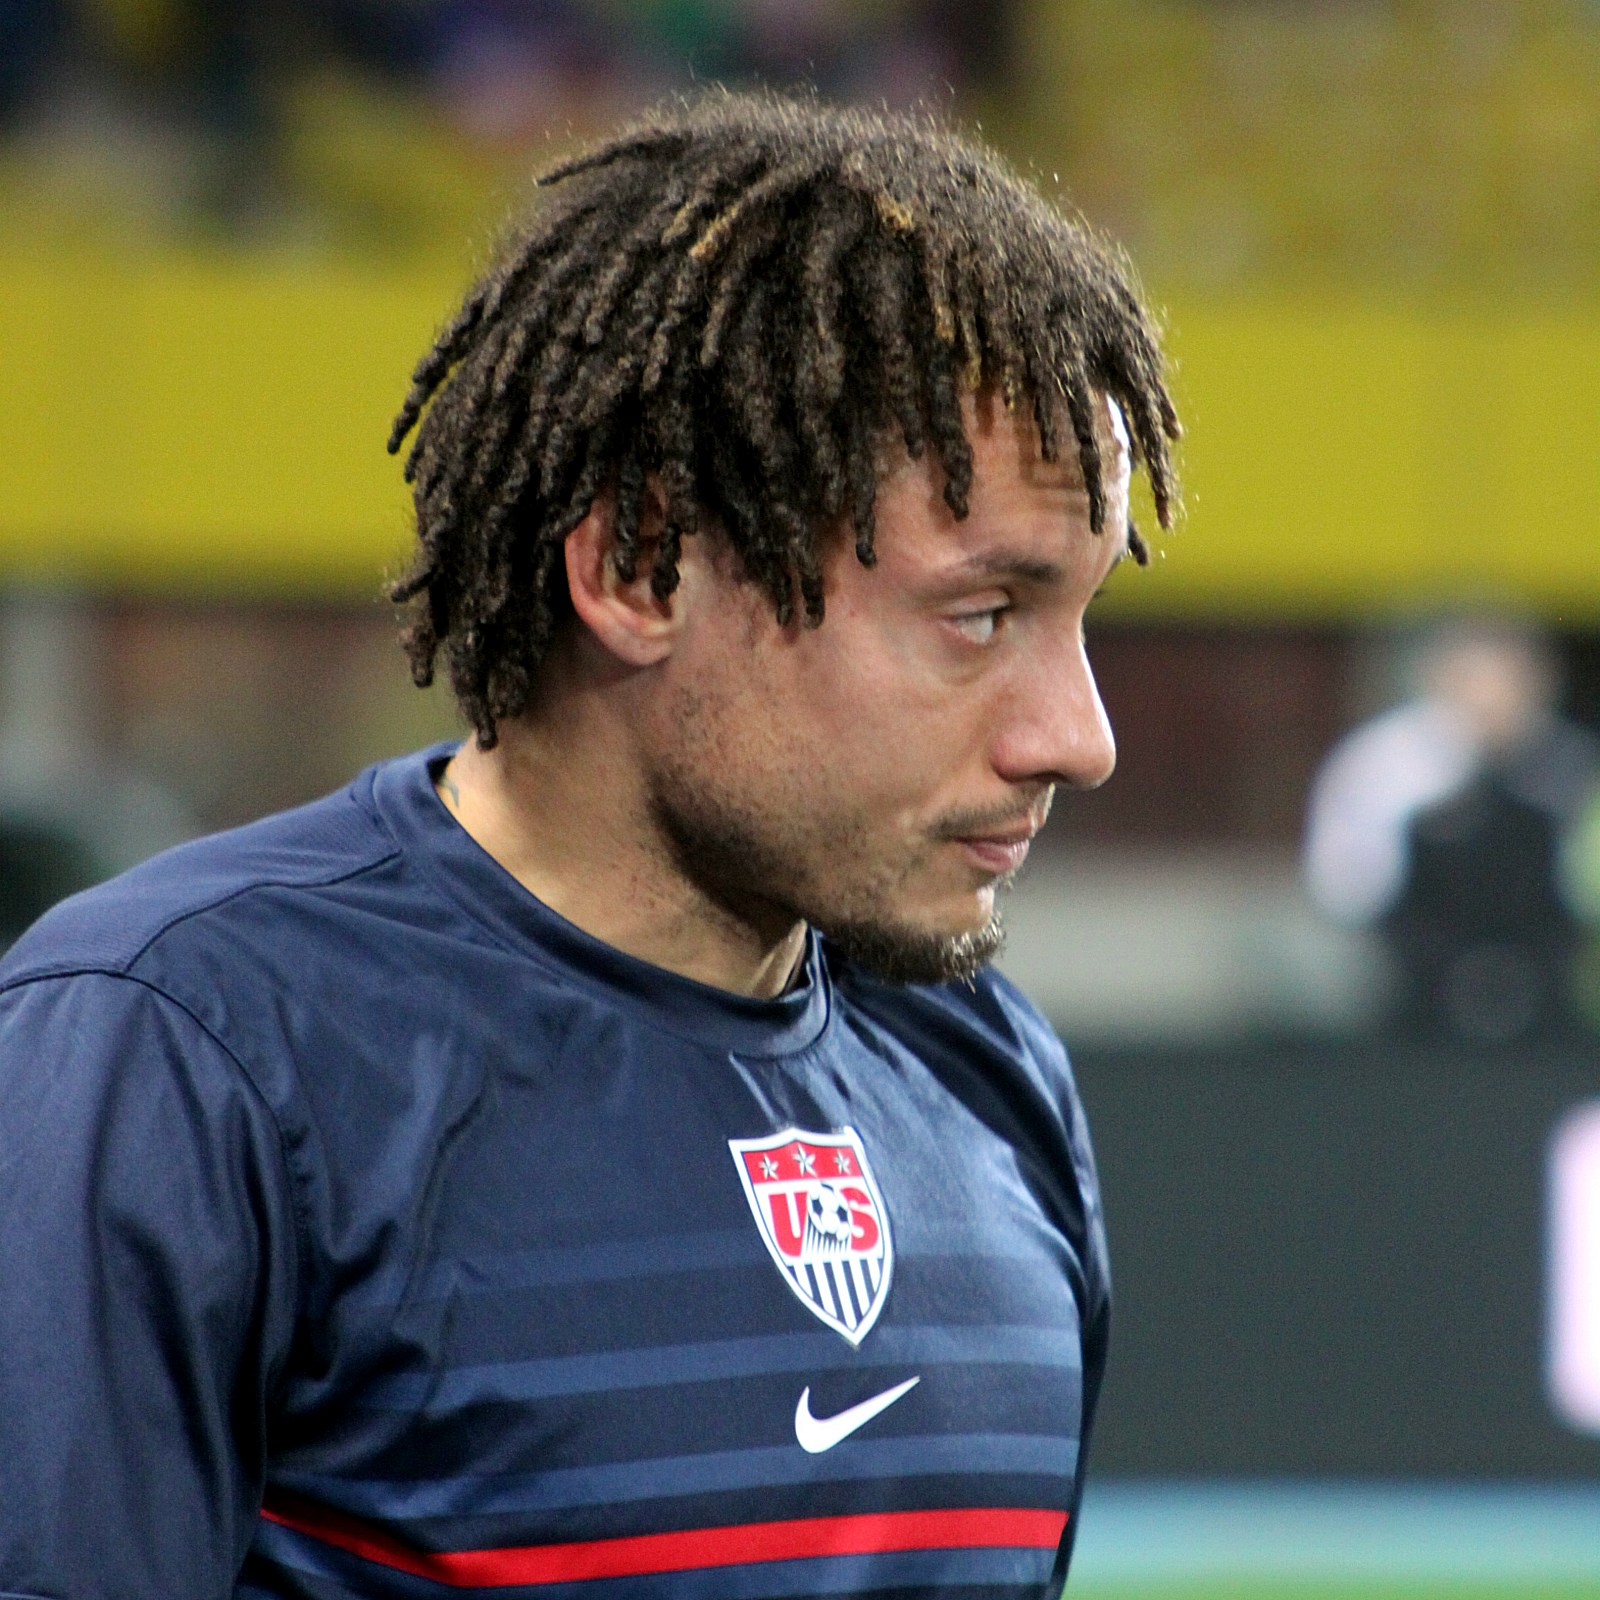 The 36-year old son of father (?) and mother(?) Jermaine Jones in 2018 photo. Jermaine Jones earned a  million dollar salary - leaving the net worth at 4 million in 2018